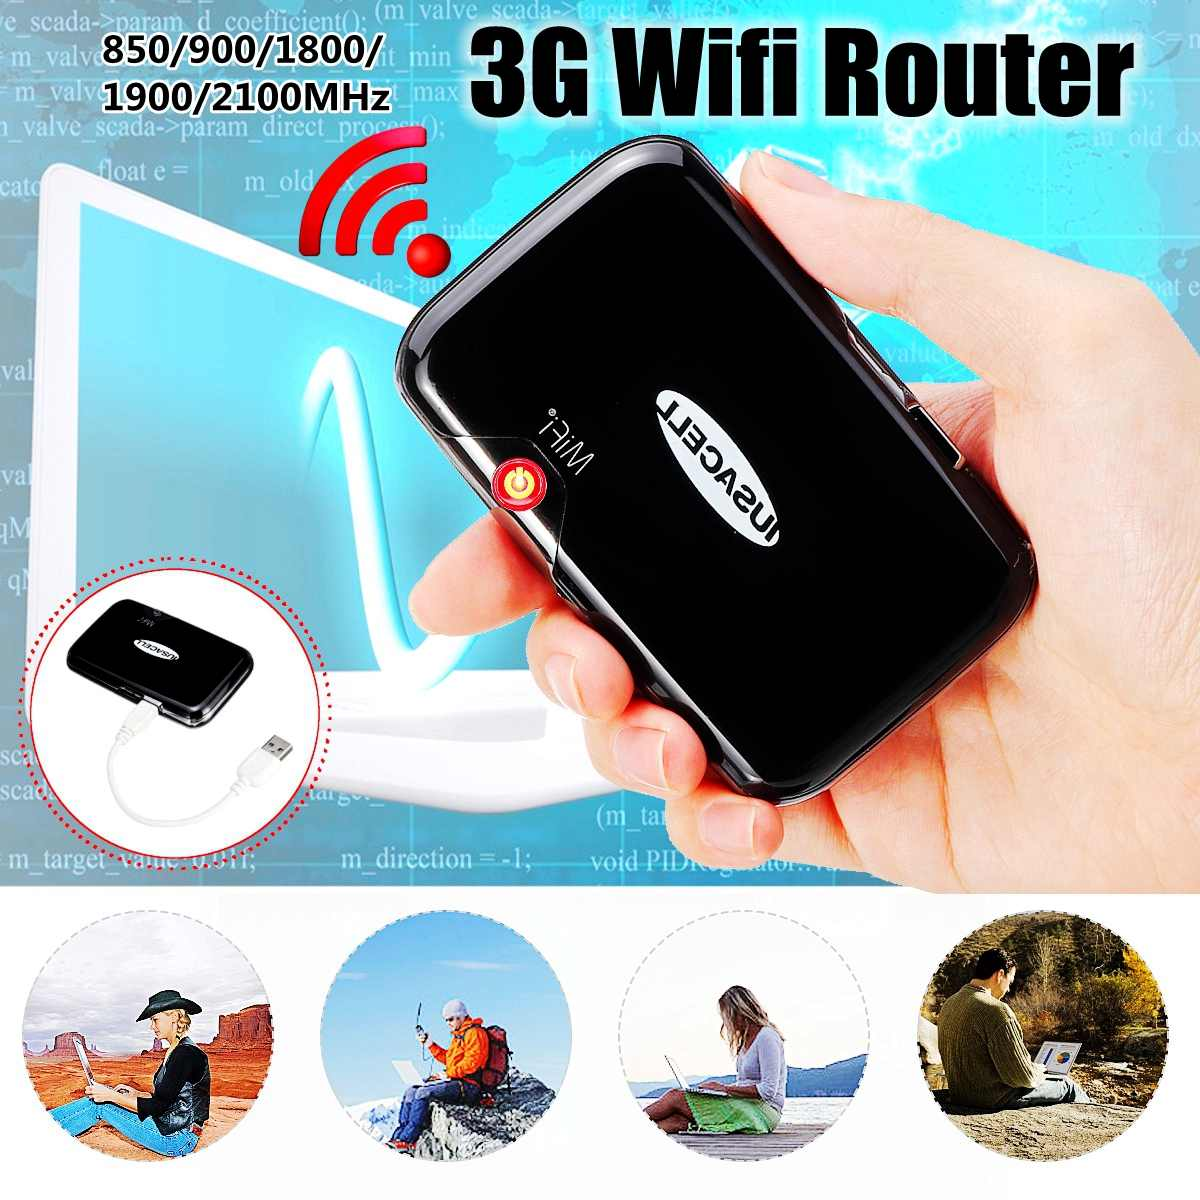 MF2372 3G Pockets Wifi Router Portable Car Mobile Wifi Hotspot Wireless Broadband Unlockeds Modem 850/900/1800/1900/2100MHz-in Wireless Routers from Computer & Office